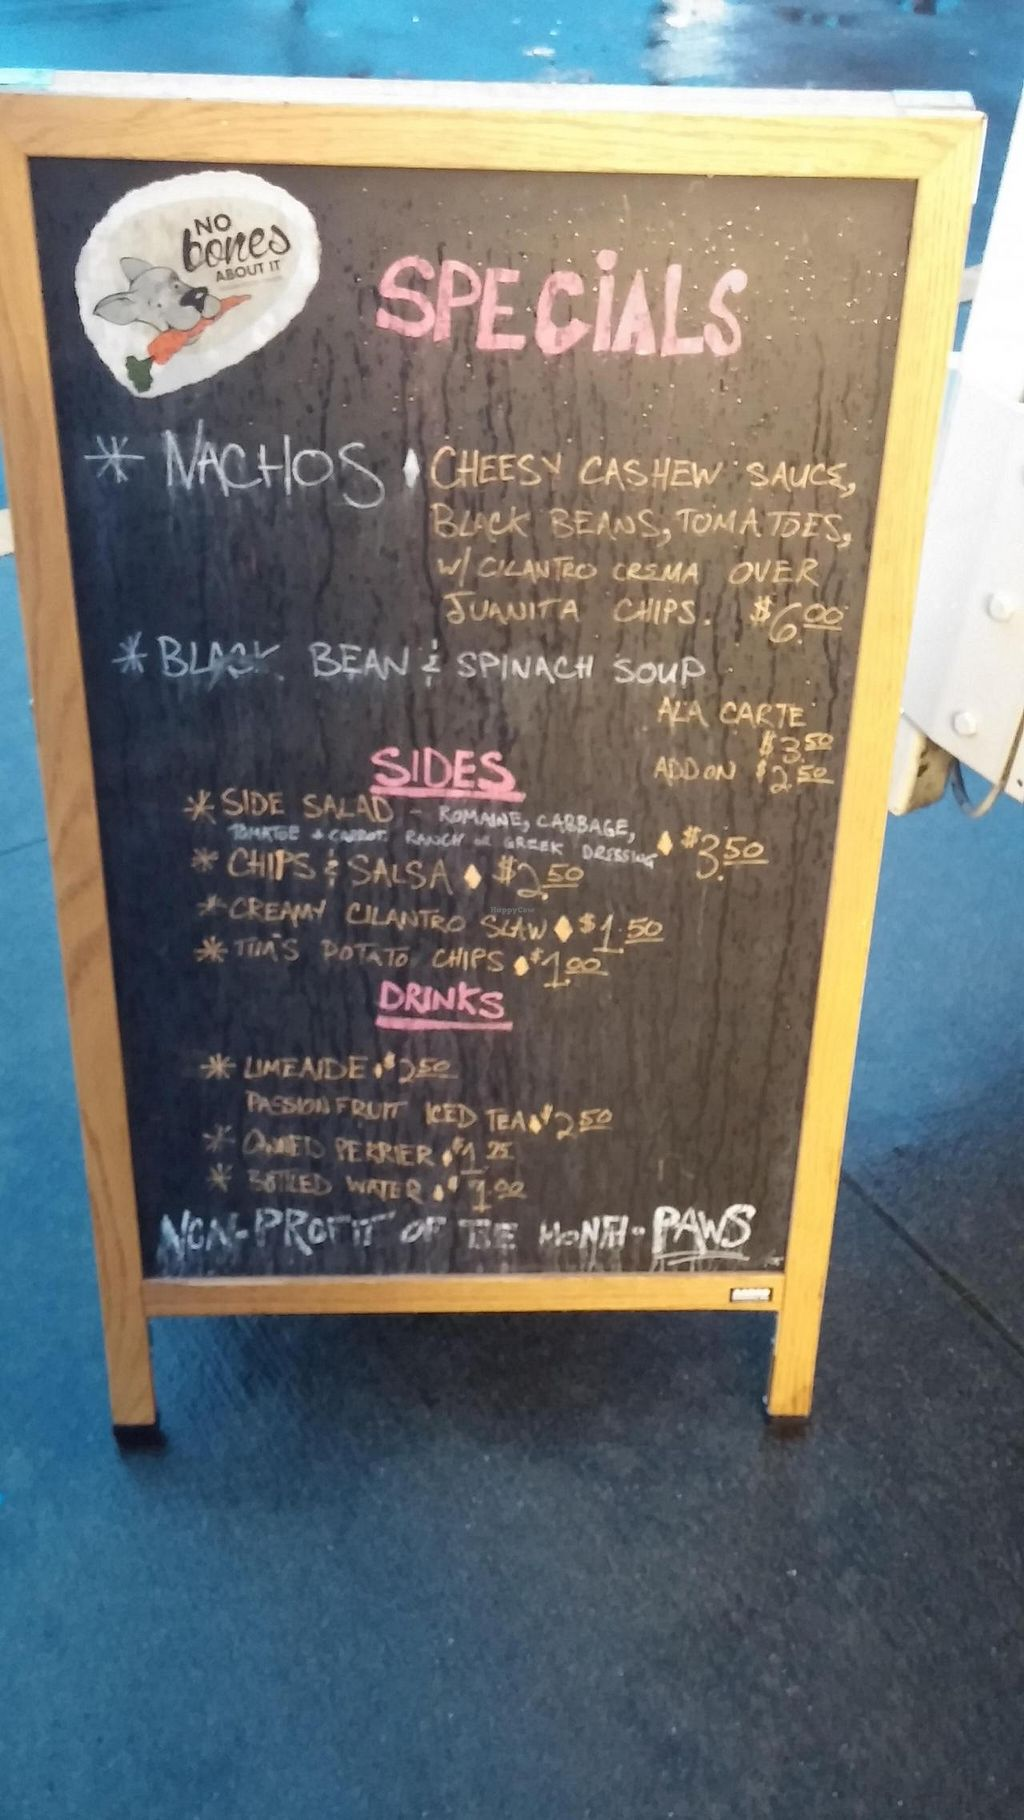 """Photo of CLOSED: No Bones About It - Food Truck  by <a href=""""/members/profile/happytheclown37"""">happytheclown37</a> <br/>More menu items <br/> November 16, 2014  - <a href='/contact/abuse/image/52569/85882'>Report</a>"""